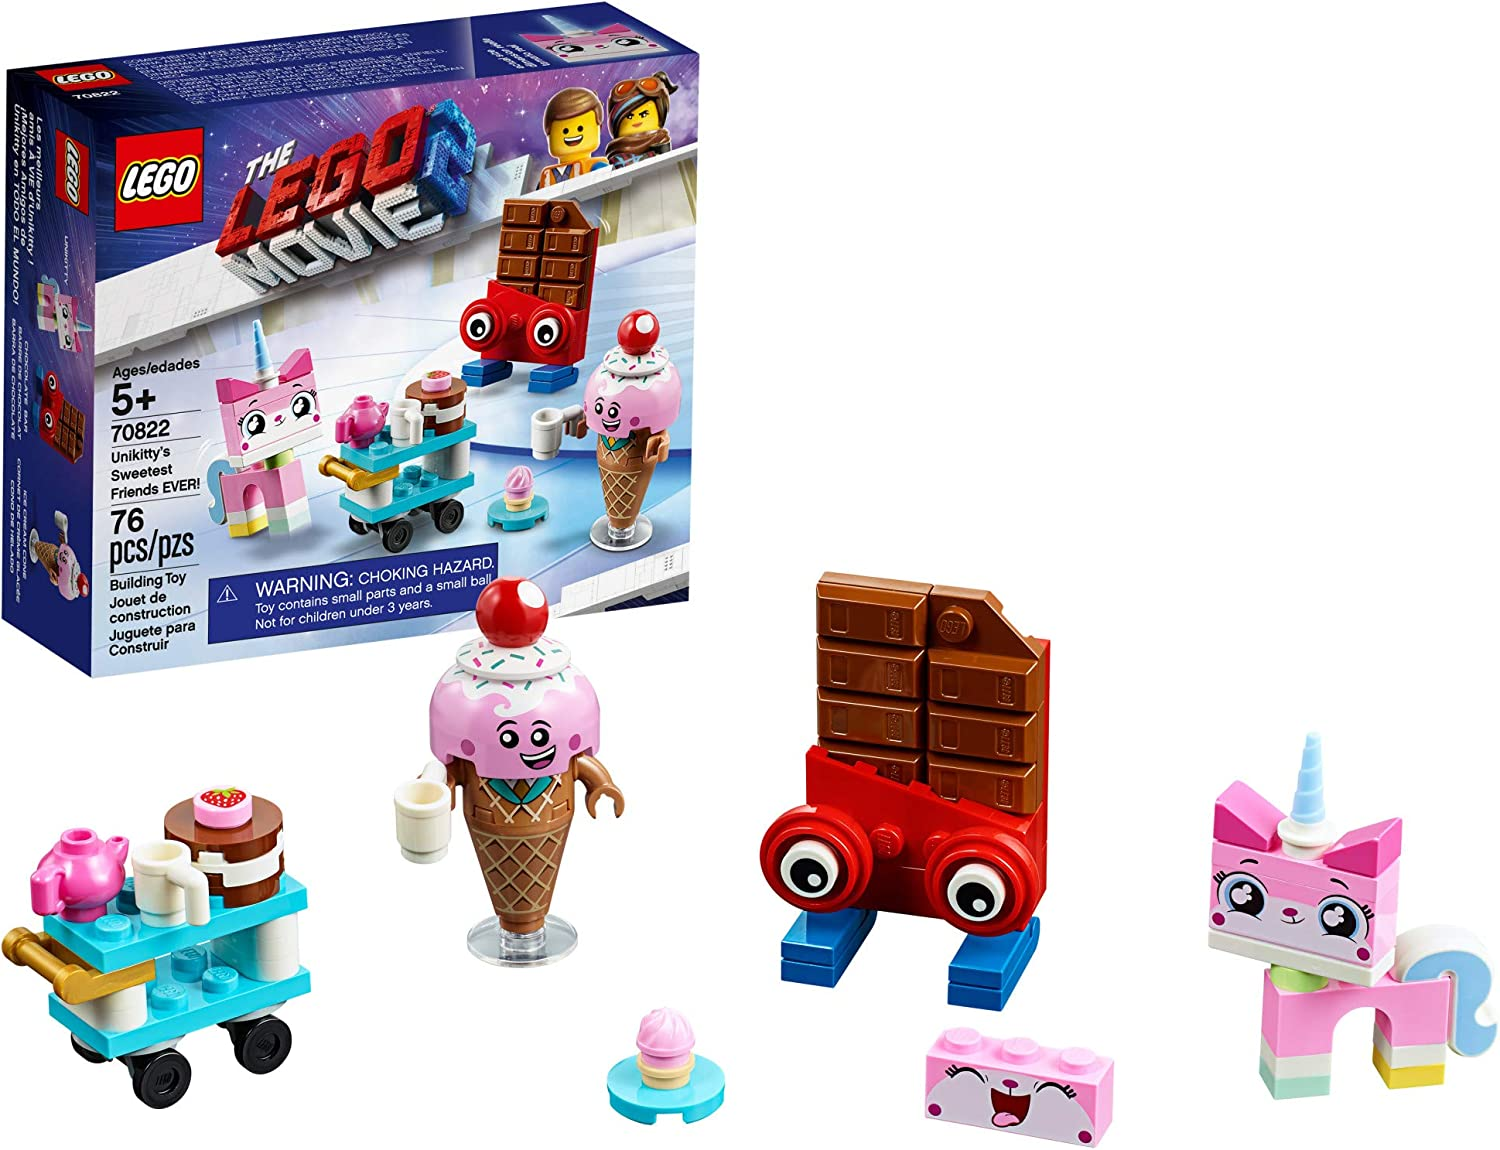 LEGO The LEGO Movie 2 Unikitty's Sweetest Friends EVER; 70822 Pretend Play Food and Friends Building Kit for Girls and Boys, Unikitty LEGO Set (76 Pieces)